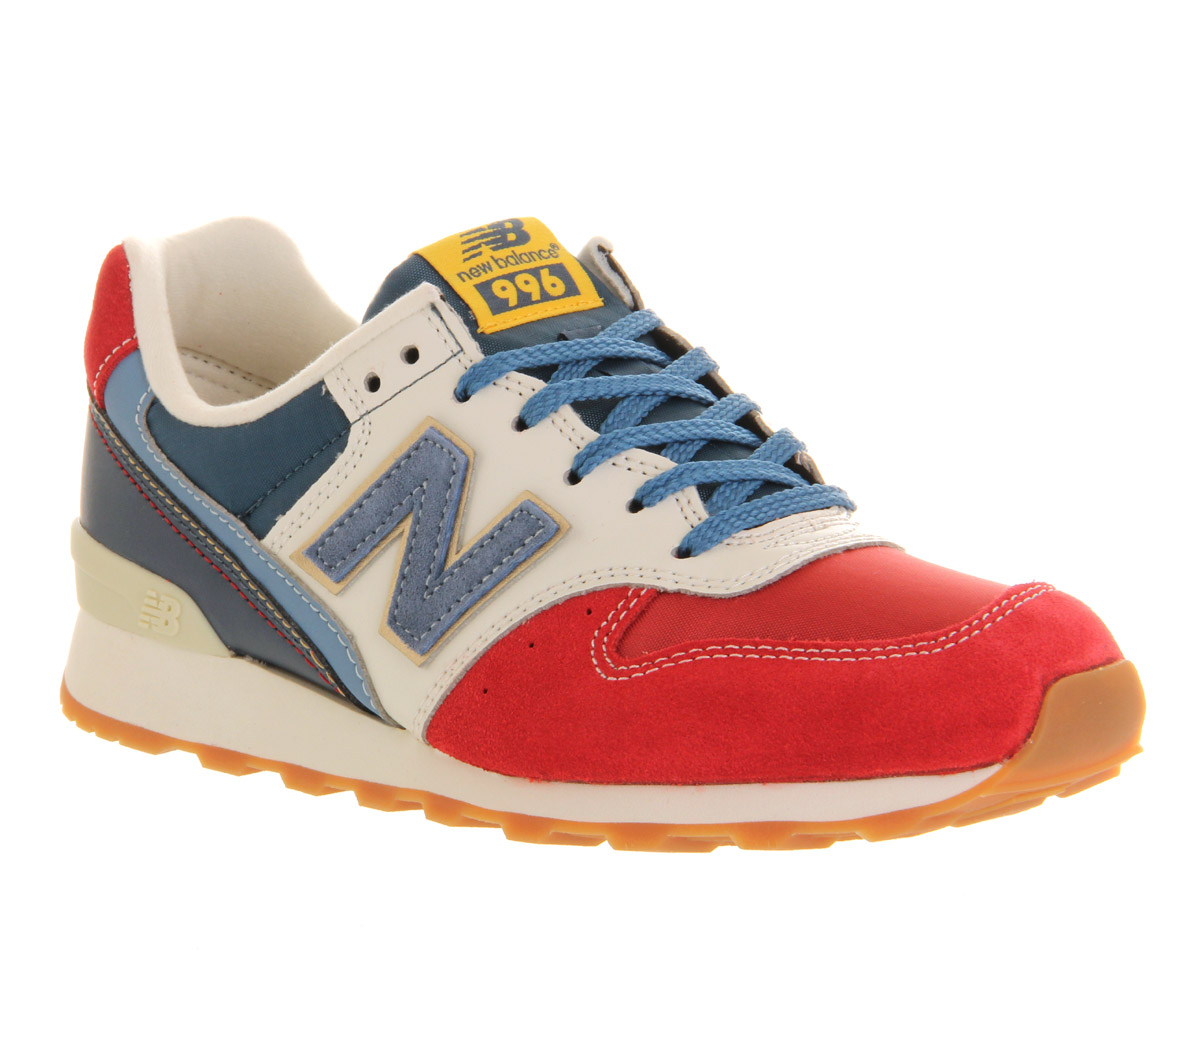 new balance wr996 red blue white trainers shoes ebay. Black Bedroom Furniture Sets. Home Design Ideas